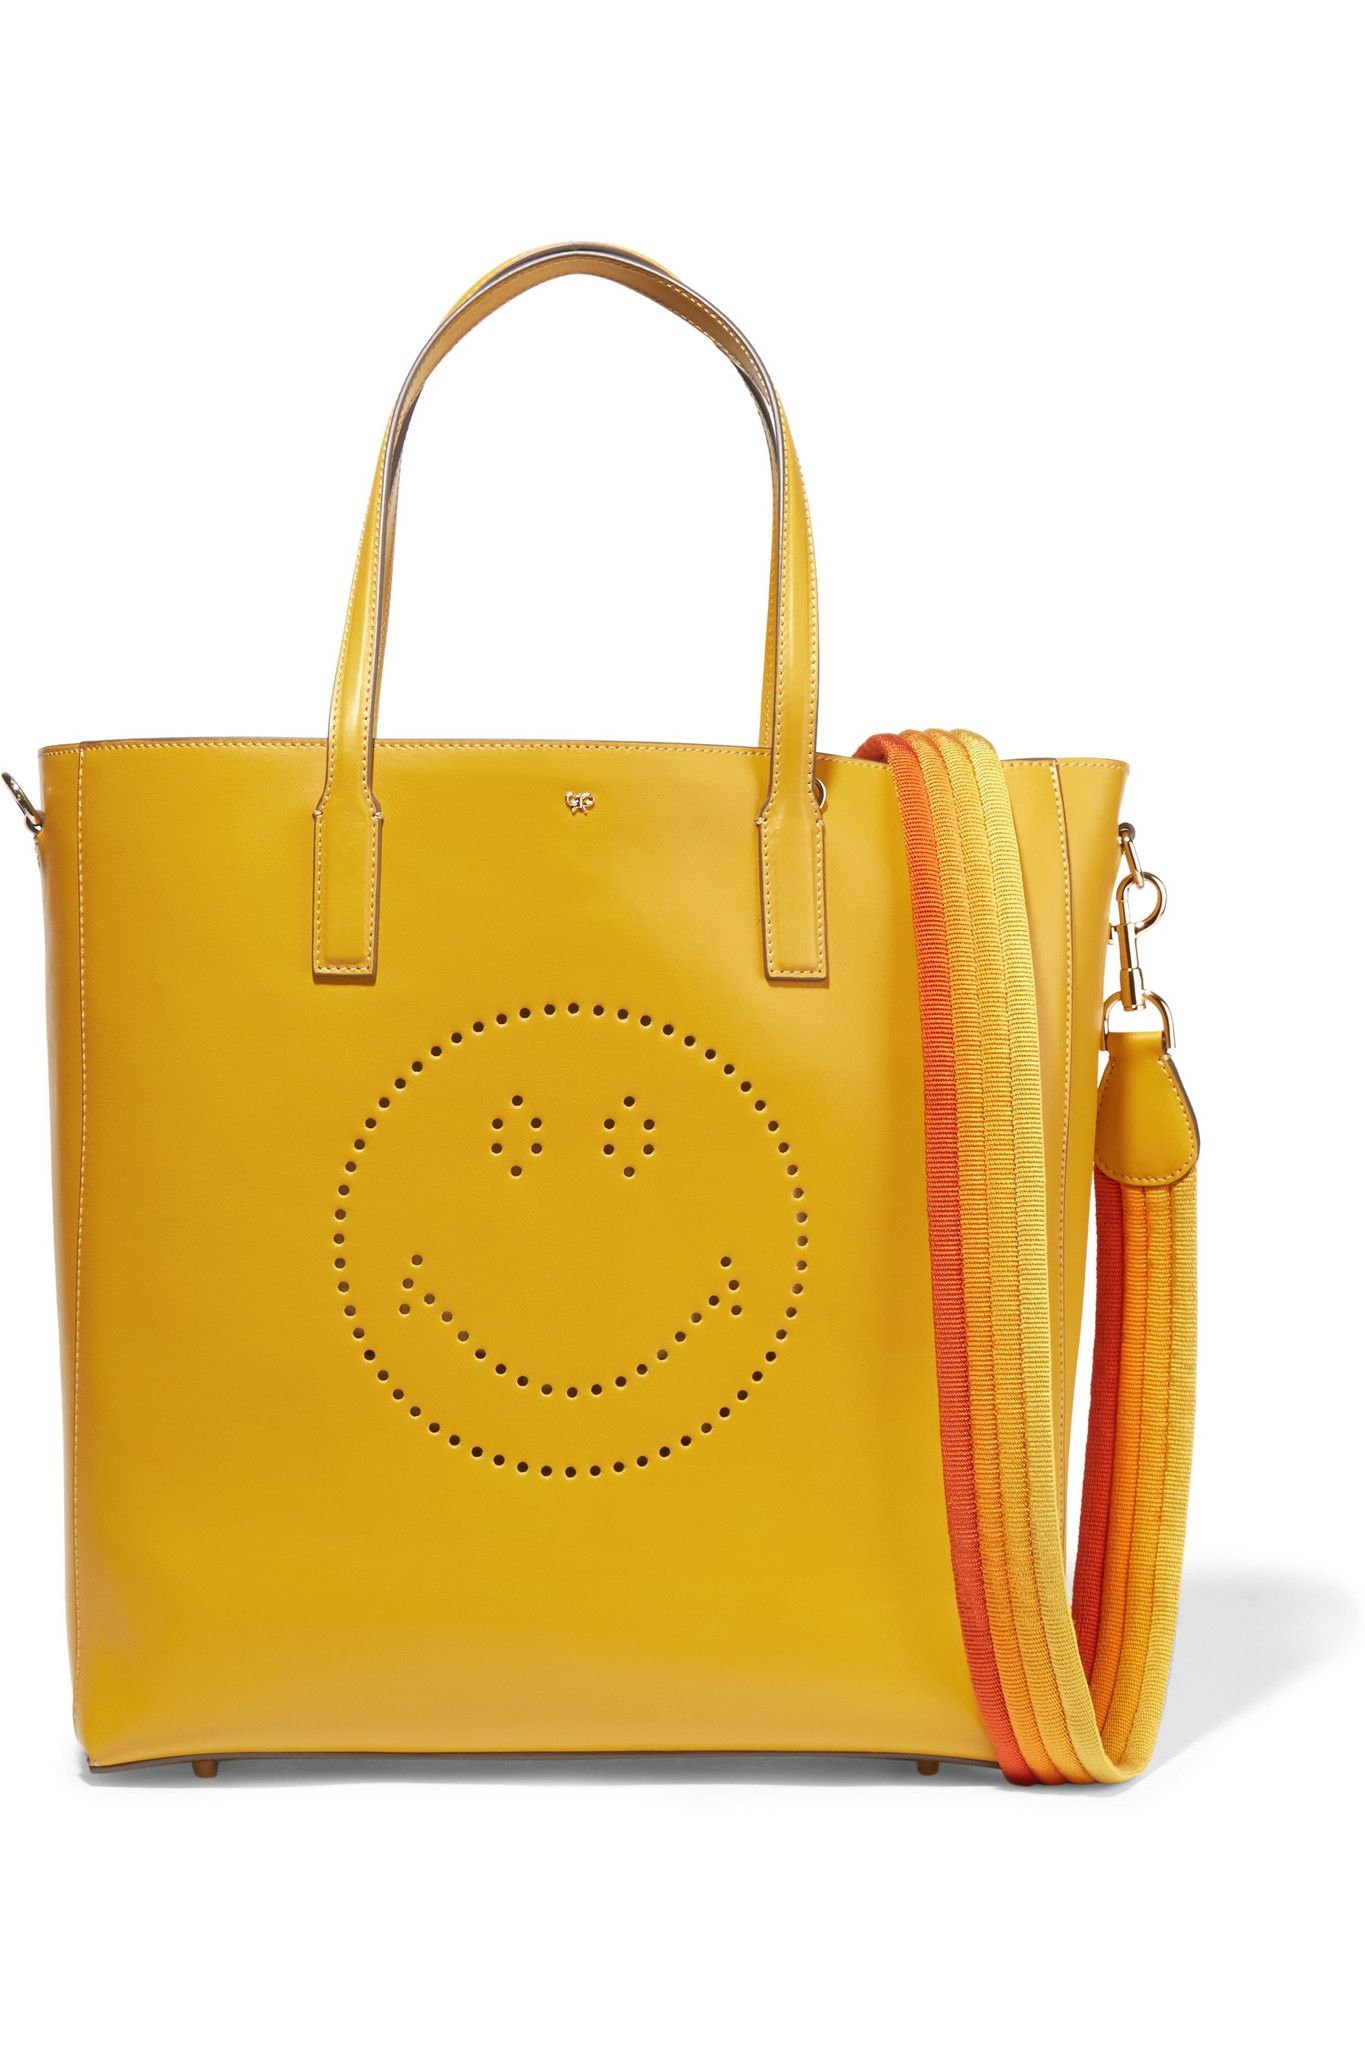 Anya Hindmarch Smiley Tote In Yellow Lyst